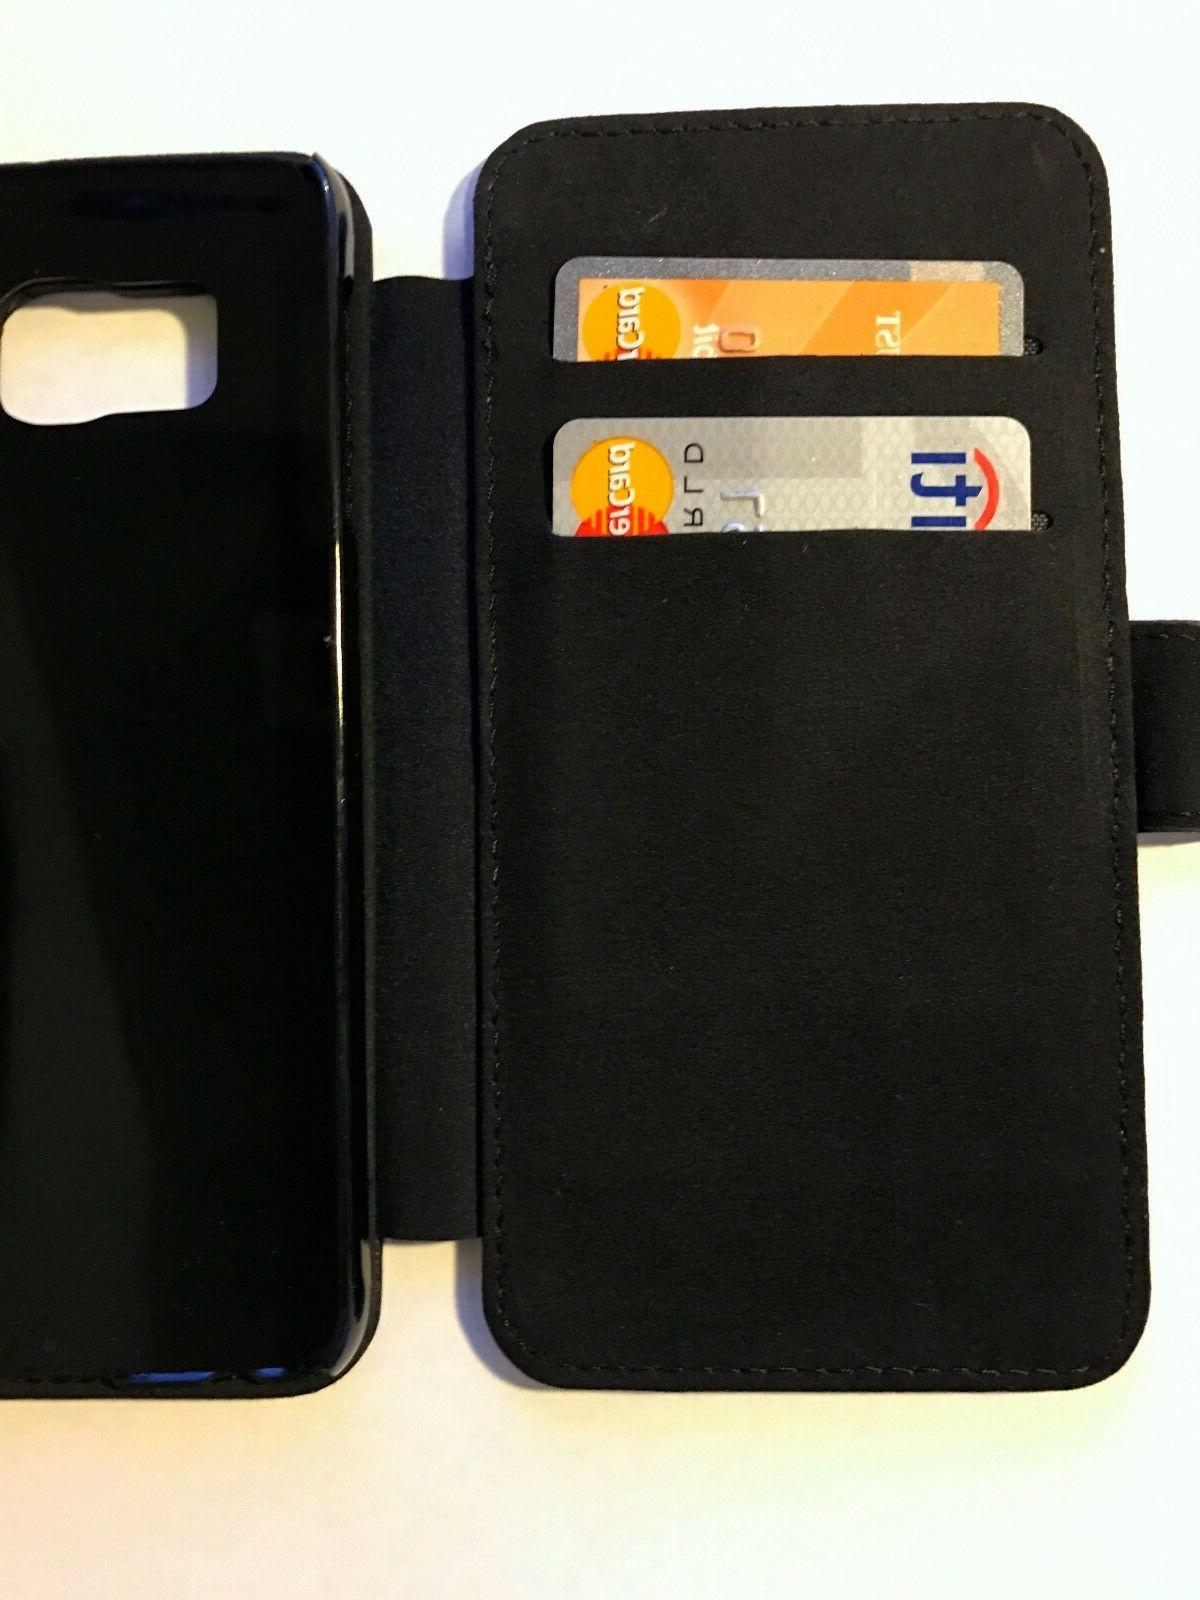 SAN PHONE CASE COVER FOR iPHONE GOOGLE